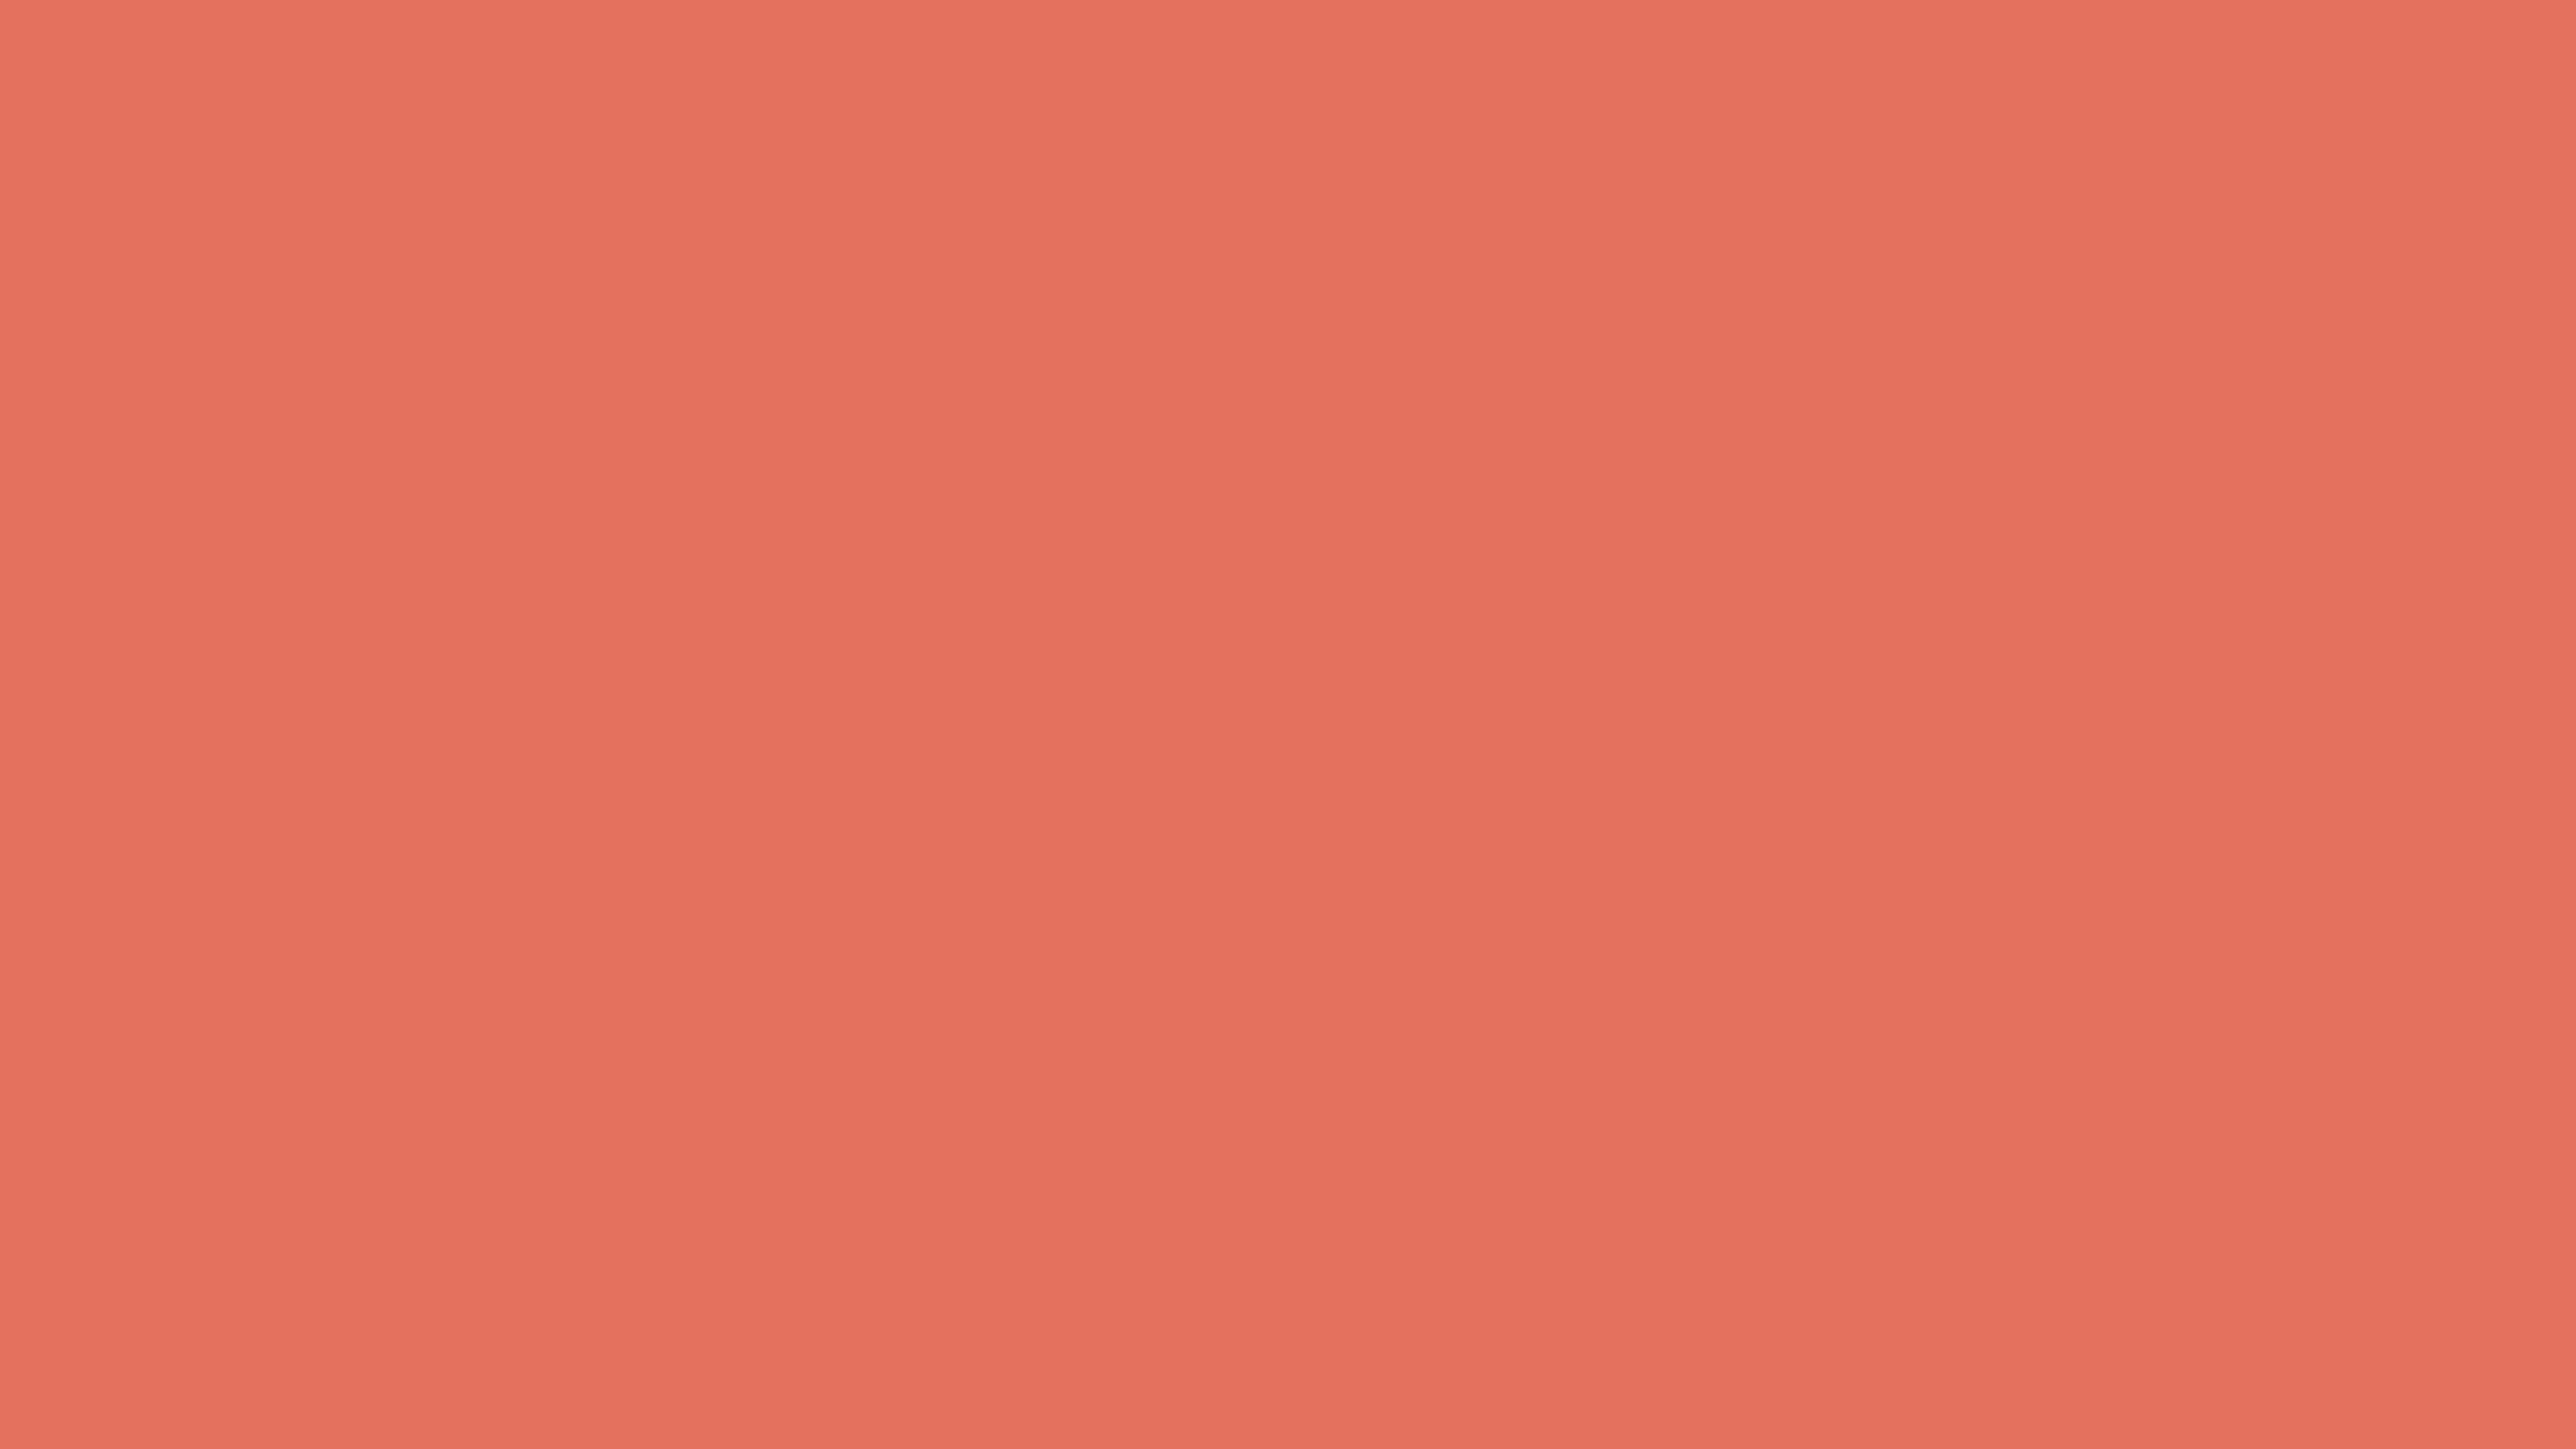 5120x2880 Terra Cotta Solid Color Background